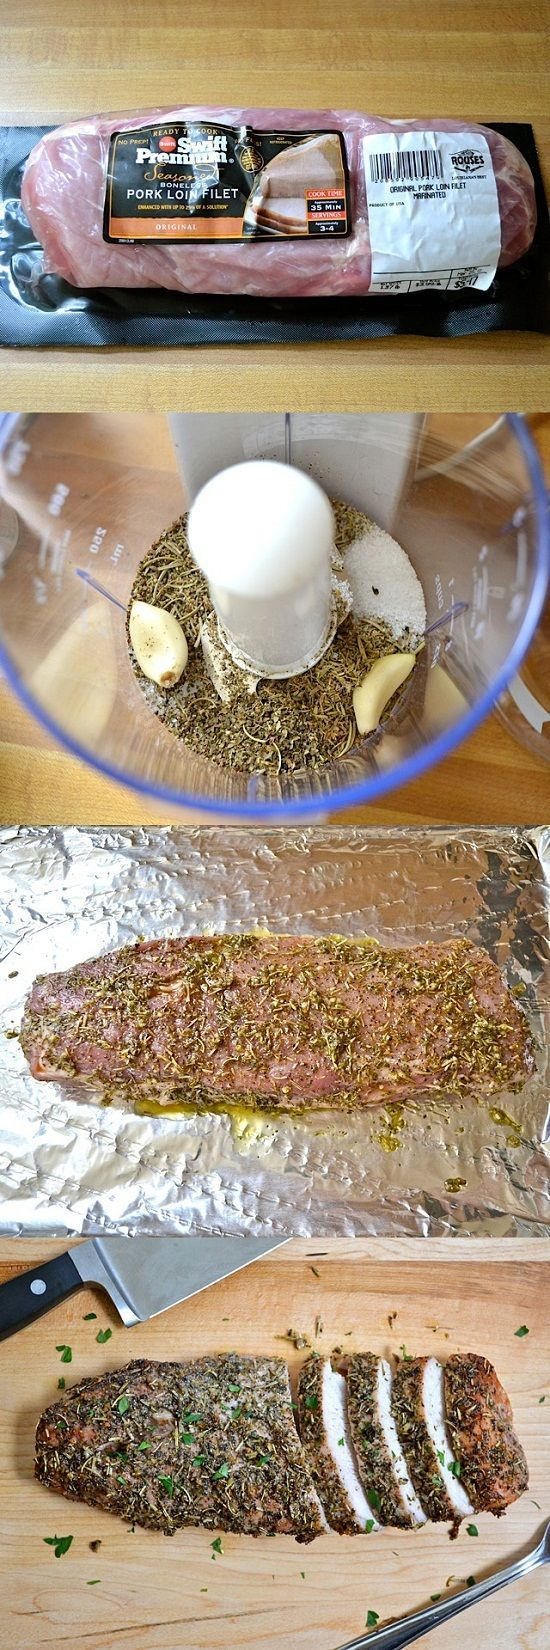 Herb Roasted Pork Loin Recipe - I think I would have to sub thyme for oregano though.